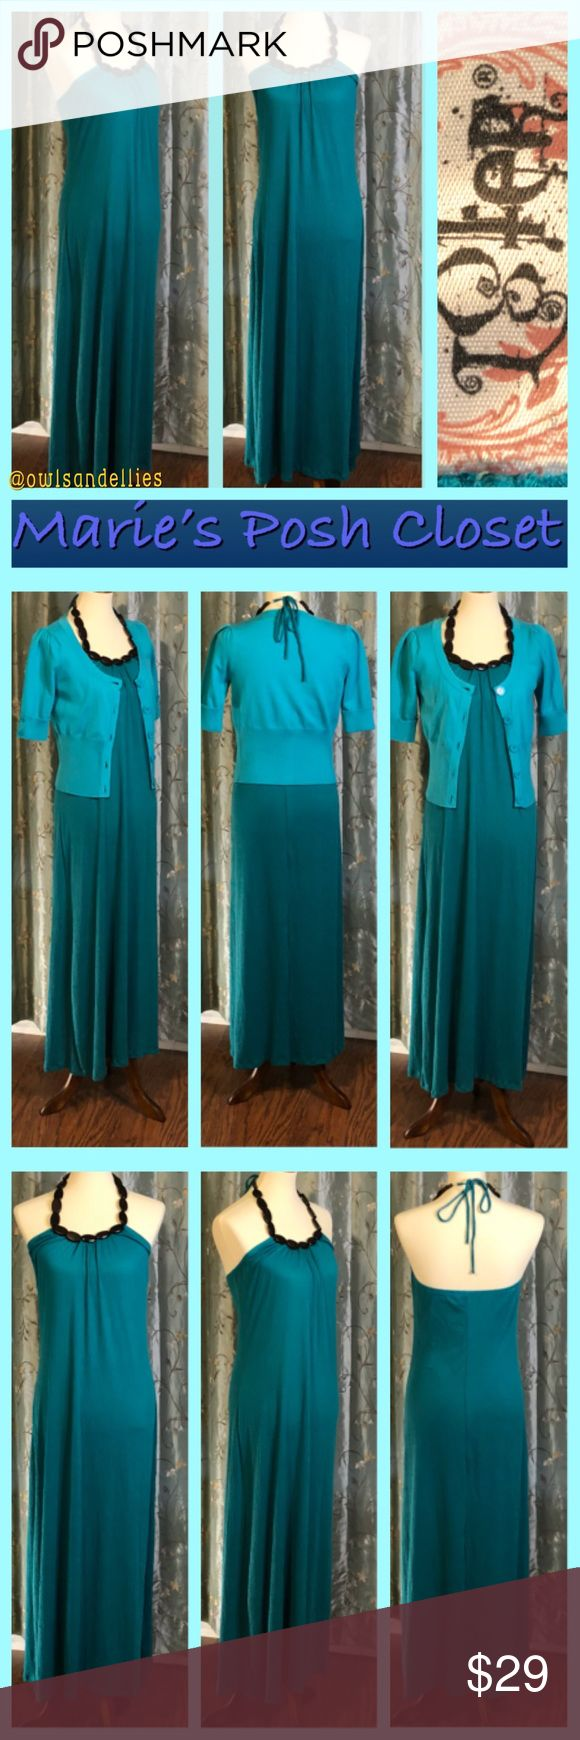 Teal Halter Maxi-Dress Lovely teal maxi-dress with wooden beaded halter collar that ties in back. Super sexy look in a gorgeous shade of teal, soft, comfy knit. EUC. L8ter Dresses Maxi